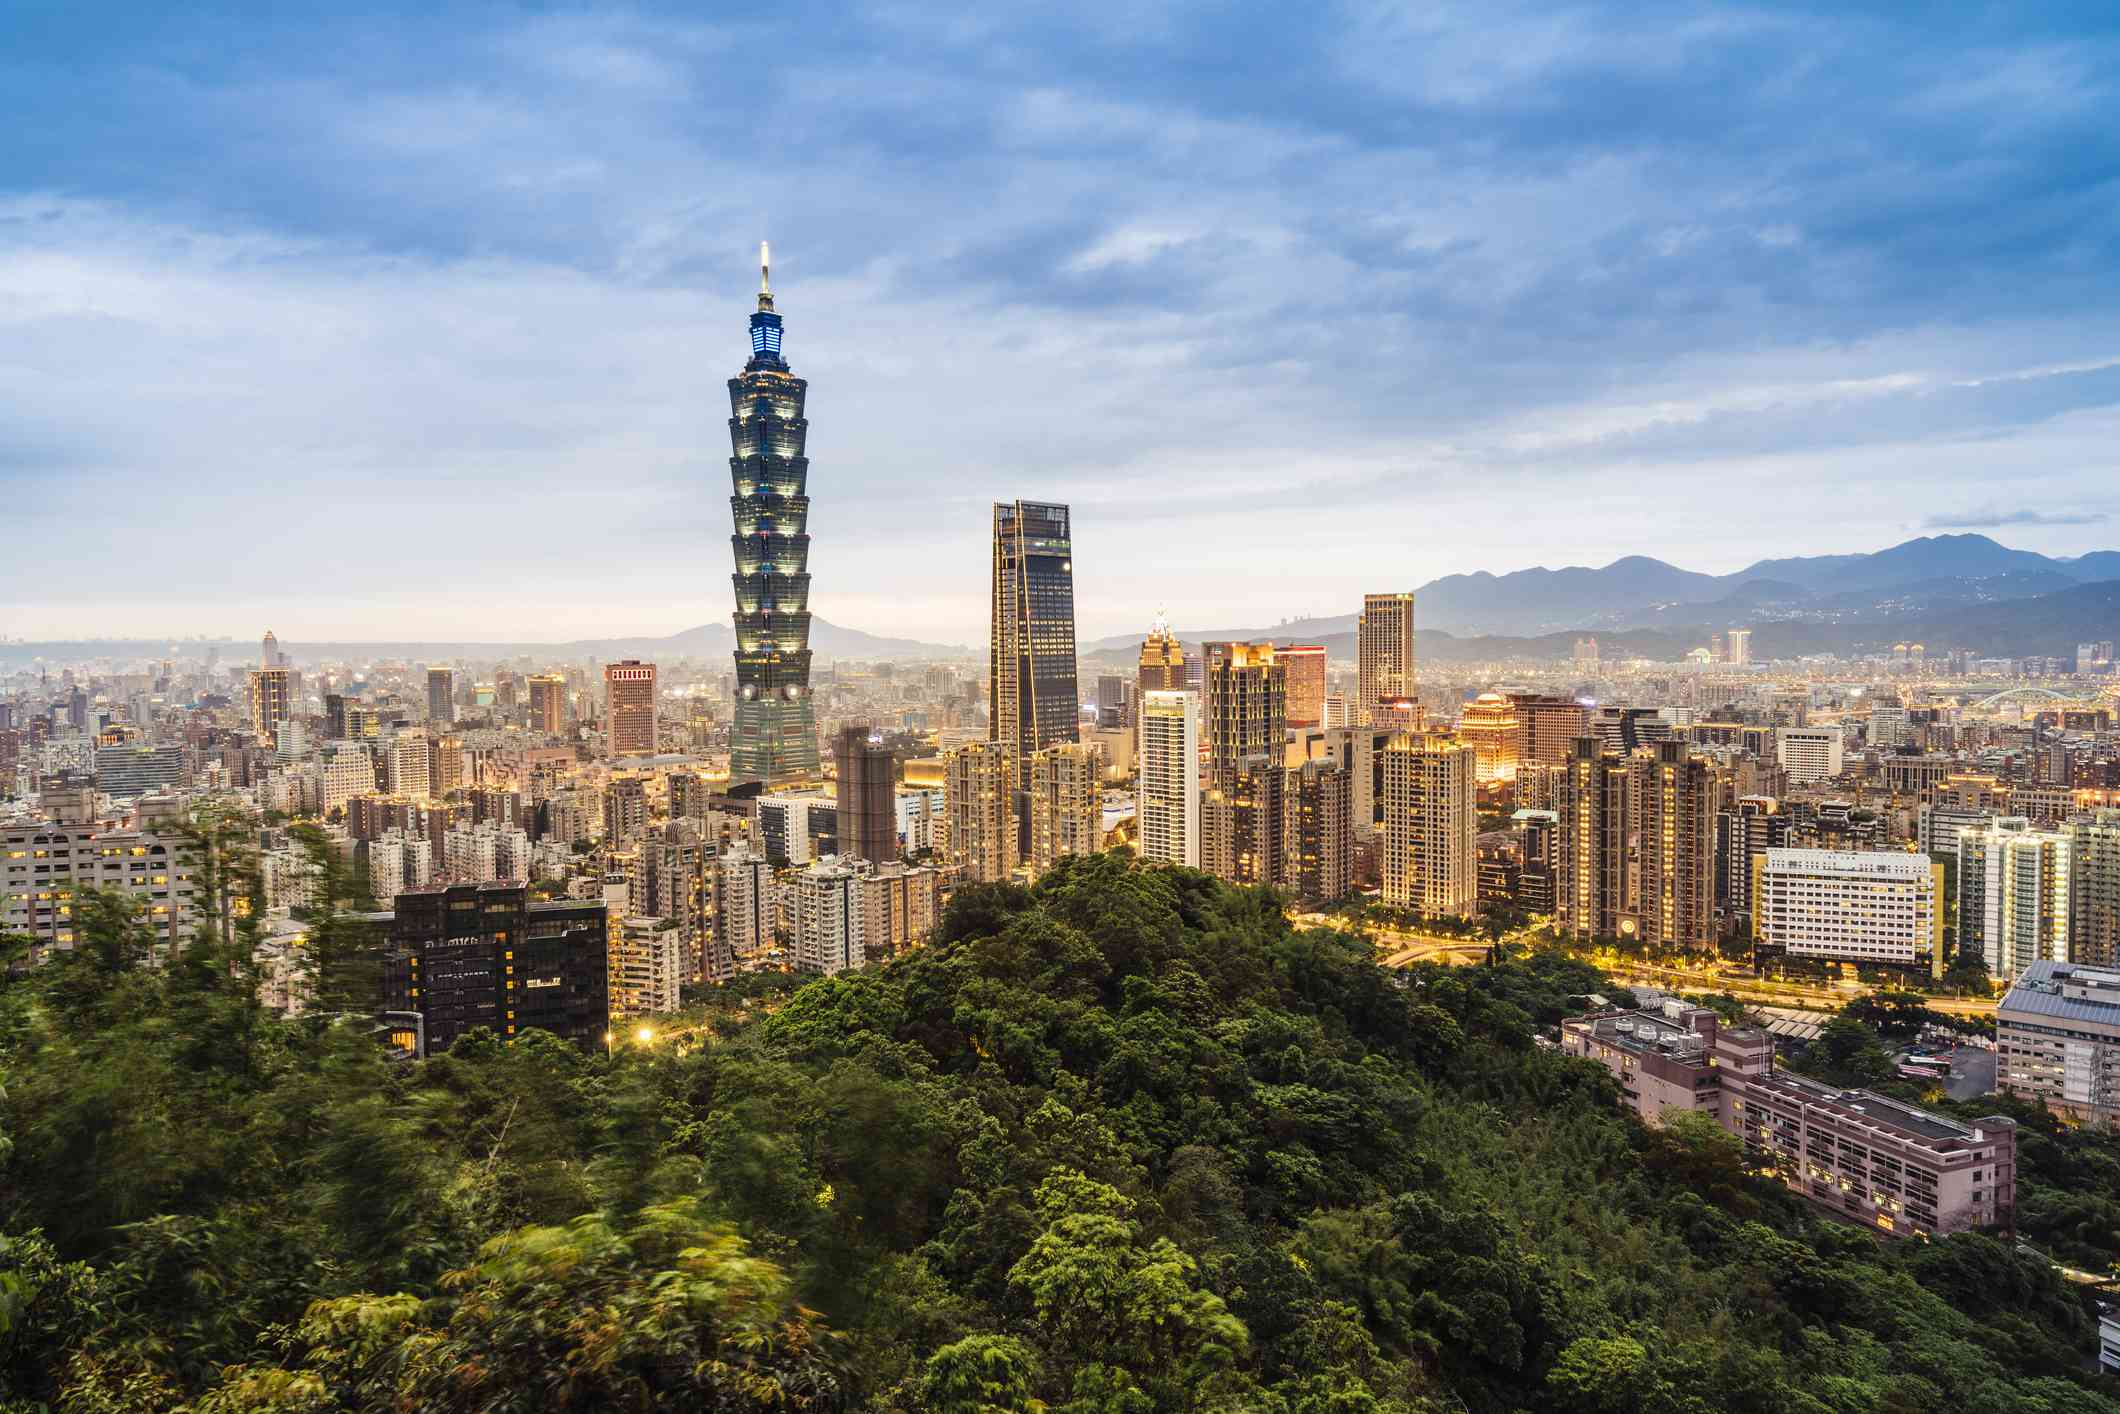 View of the city of Taipei and the tallest structure, the Taipei 101 tower, from the lush green forests of Elephant Mountain